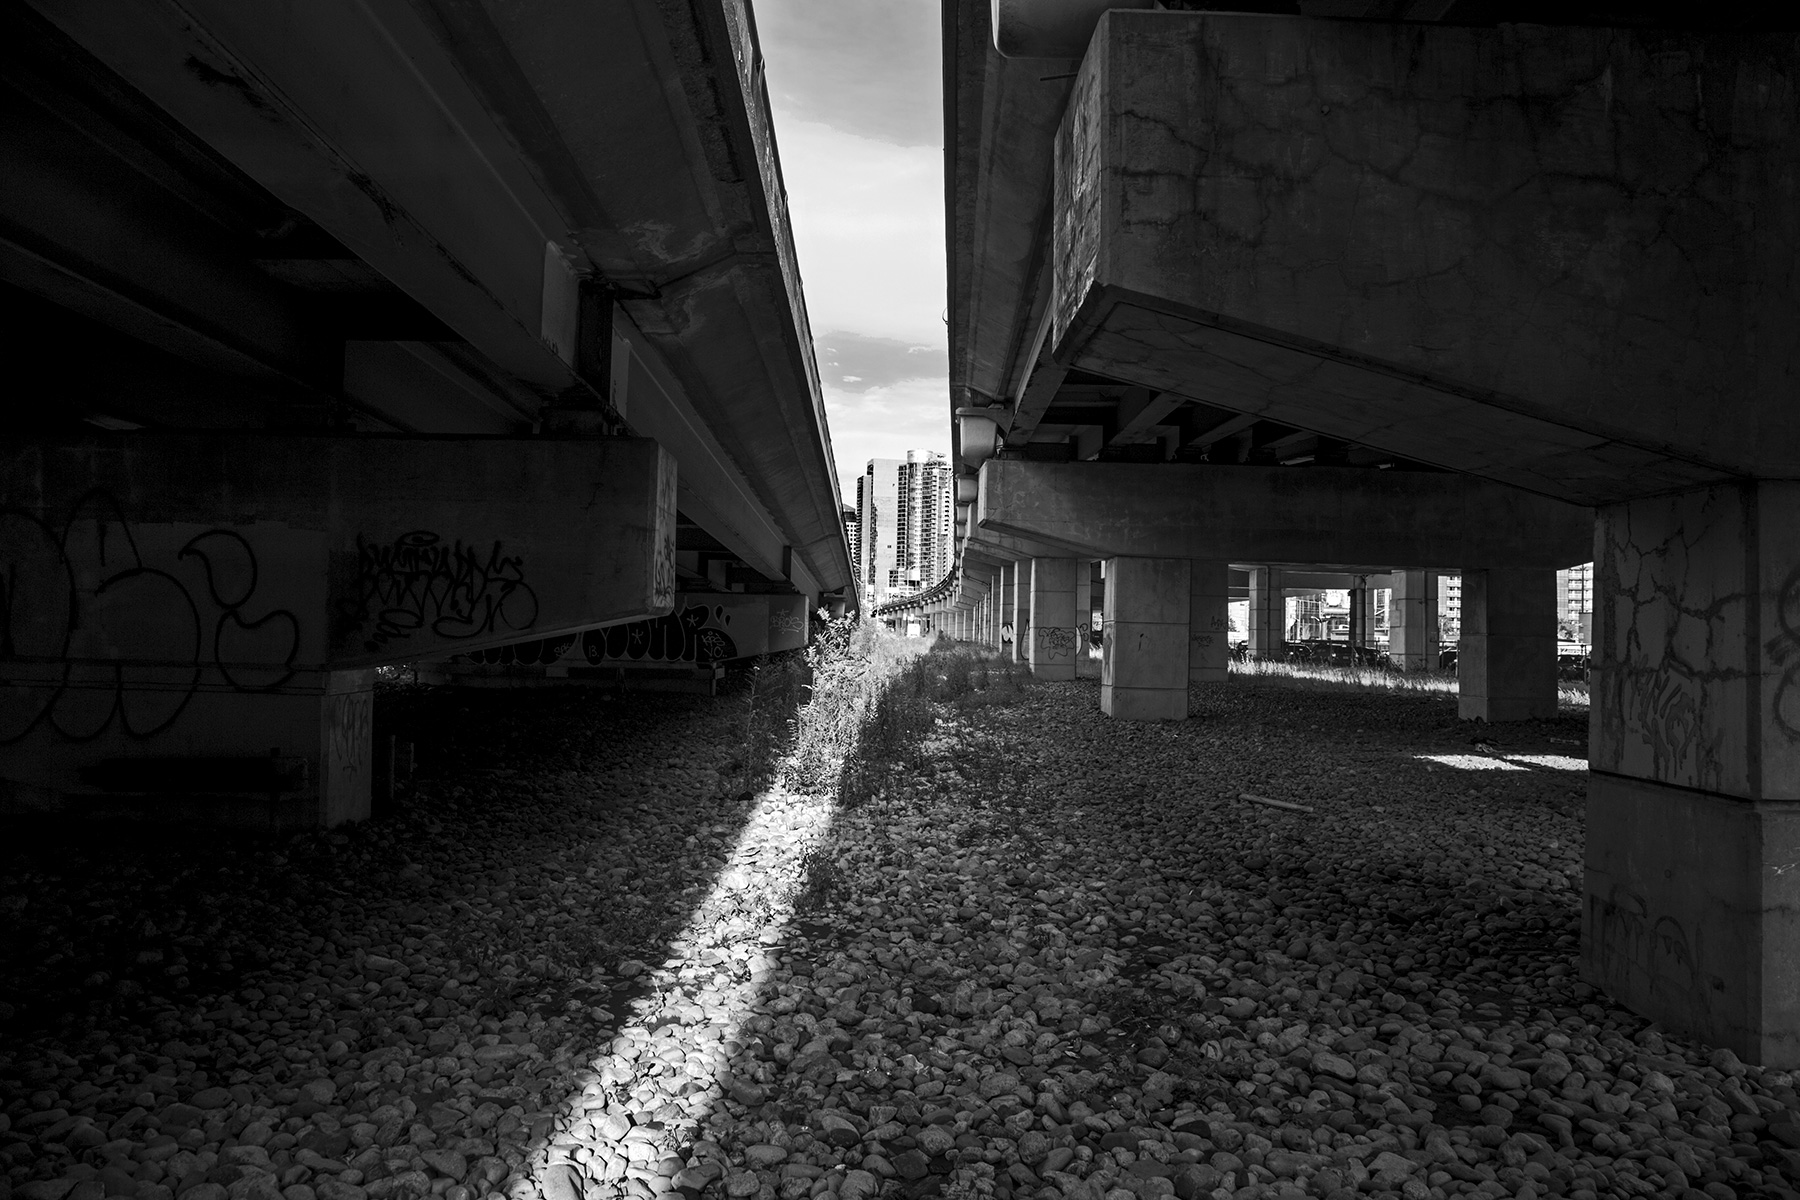 20150430. Under and in between Toronto's Gardiner Expressway and